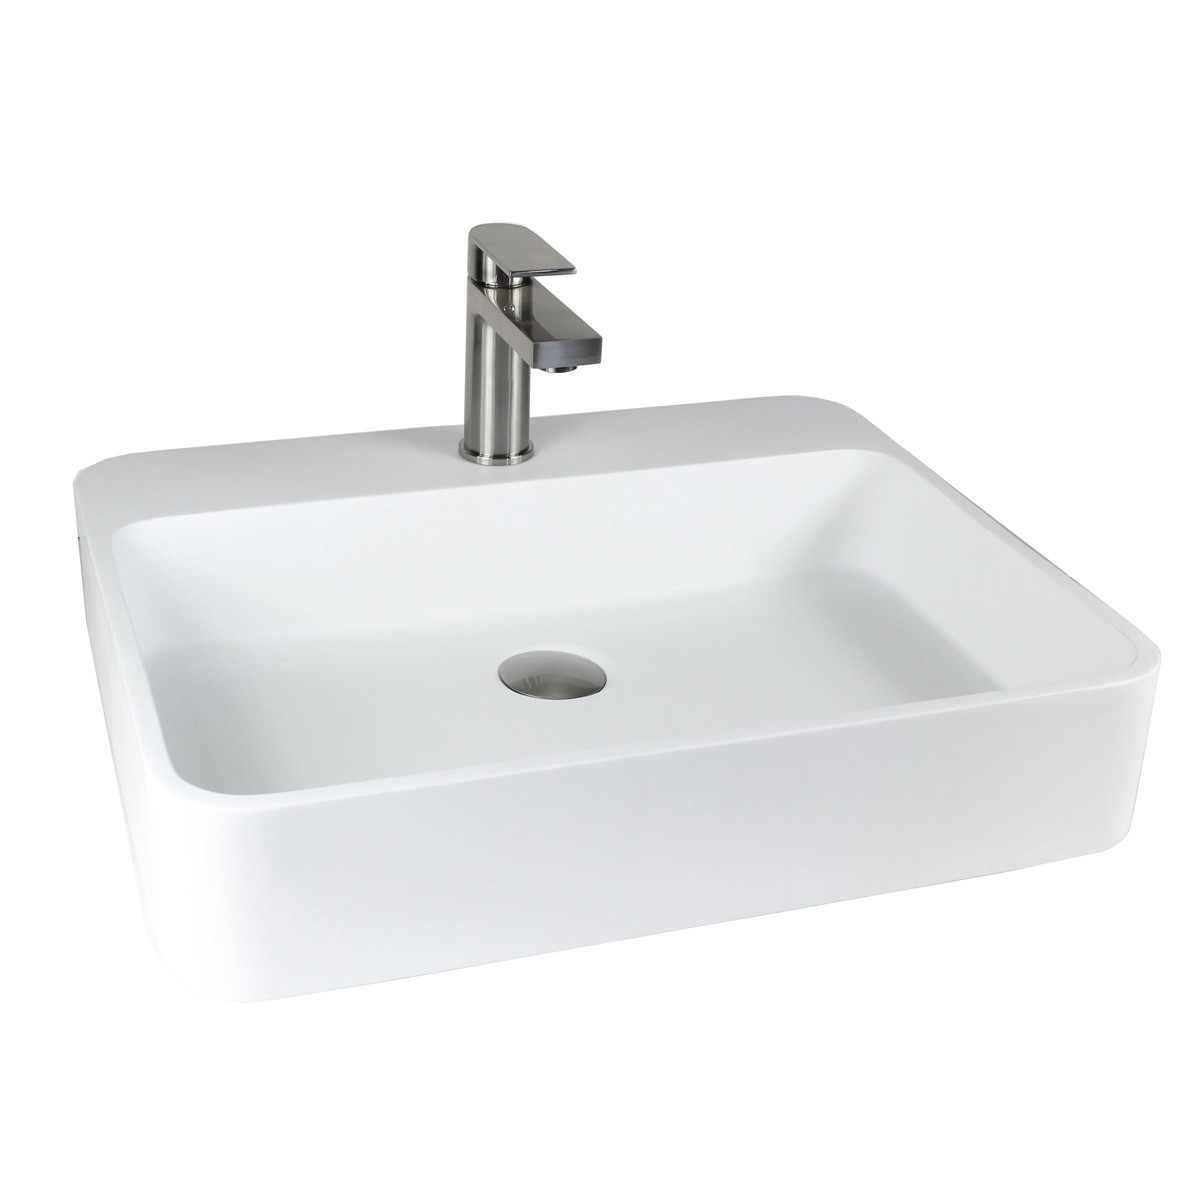 Single Hole Vessel Sink Faucet : Display Gallery Item 1 Display Gallery Item 2 Display Gallery Item 3 ...